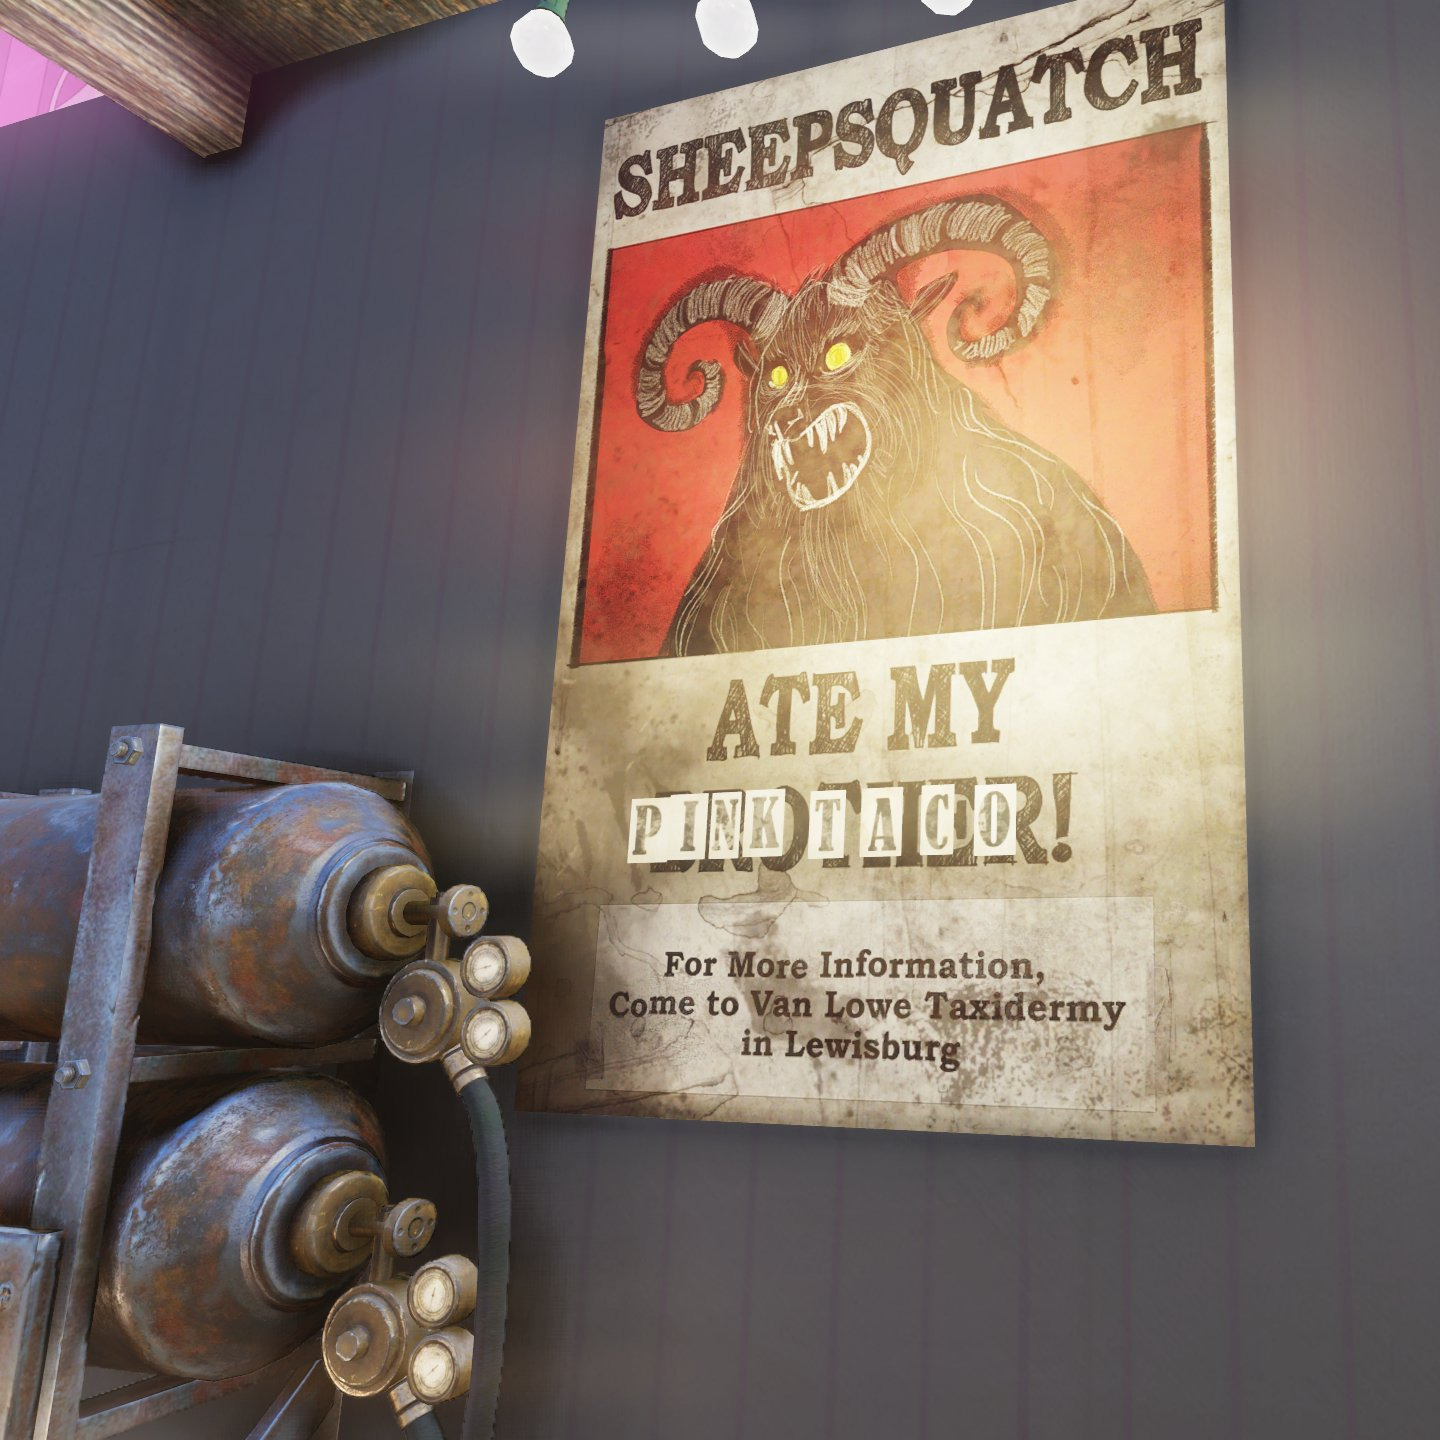 Chad A Fallout 76 Podcast 160k Subs Listens On Twitter That Sheepsquatch Really Gets Around Fallout Fallout76 Fallout76hype Fallout76memes Falloutcommunity Fuckchad Https T Co Hleddqaymf